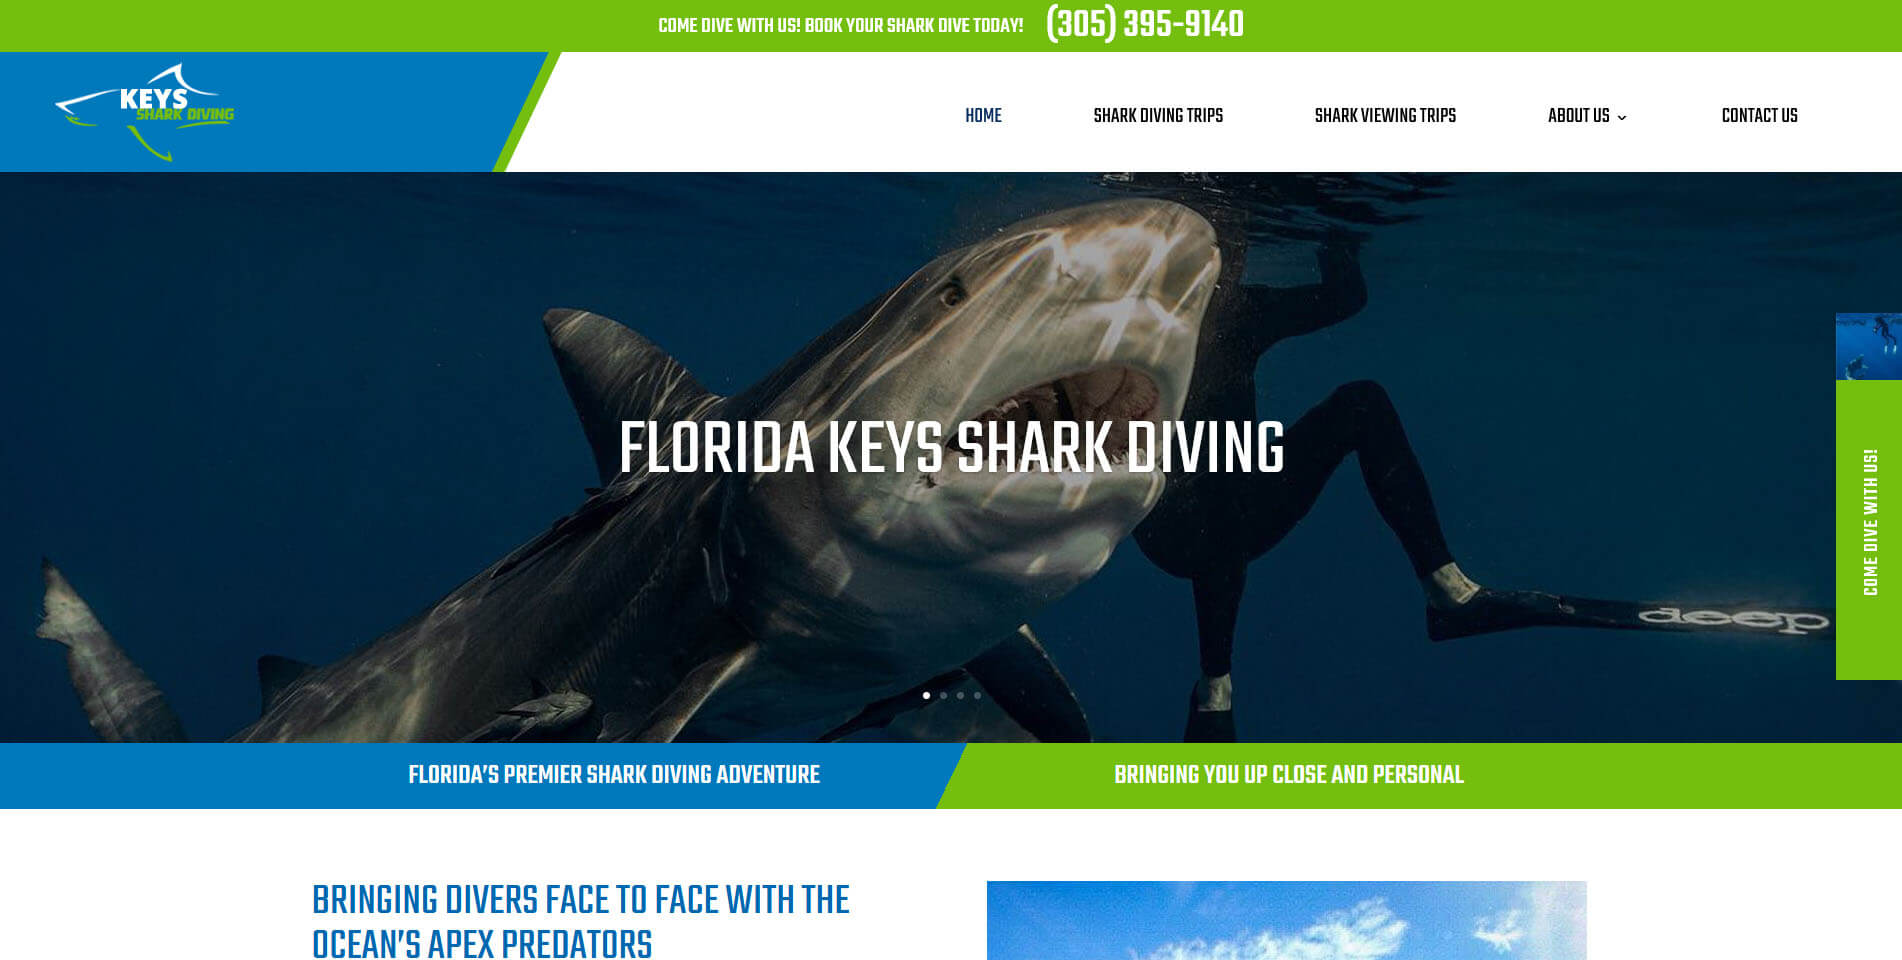 An image of the homepage of the Keys SHark Diving website, created by Not Fade Away agency.